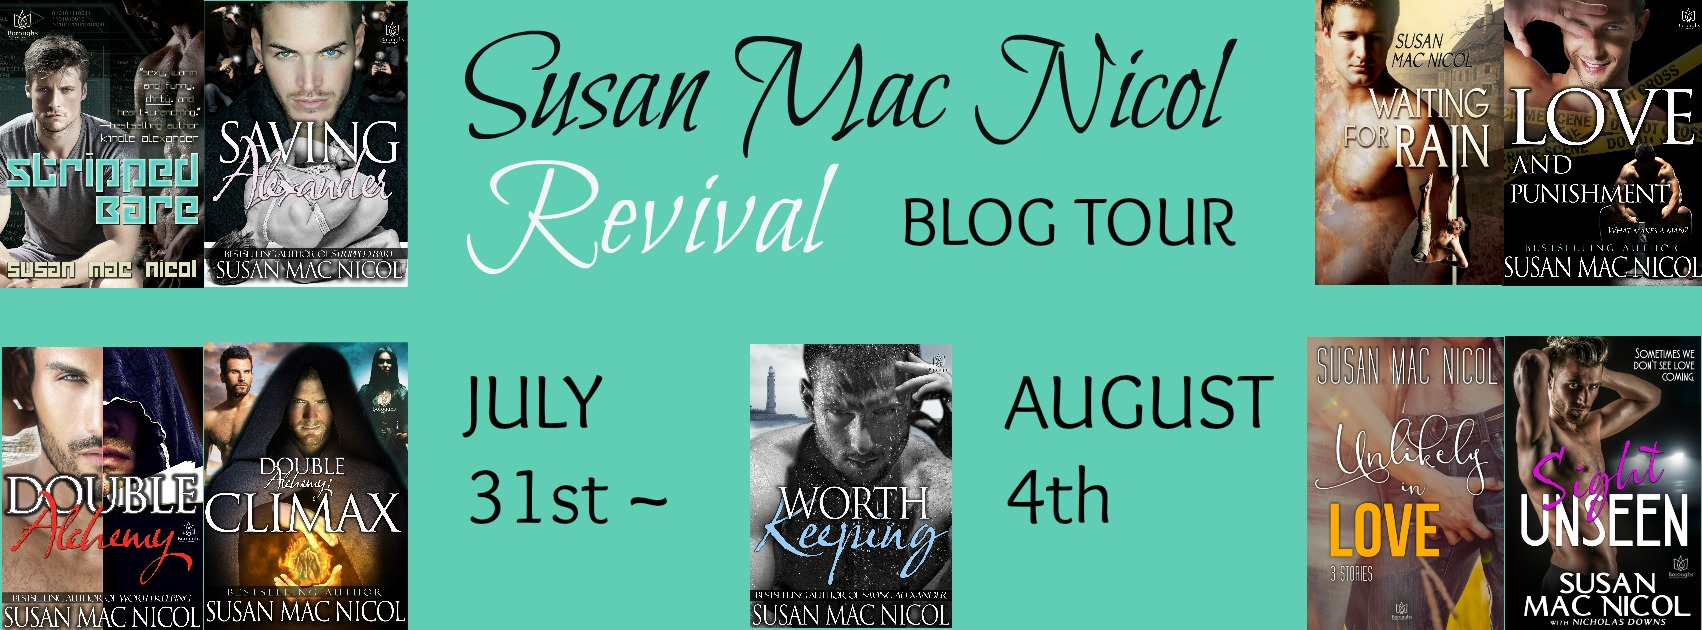 Revival Blog Tour: Exclusive Excerpt & Giveaway -- Susan Mac Nicol - Love and Punishment